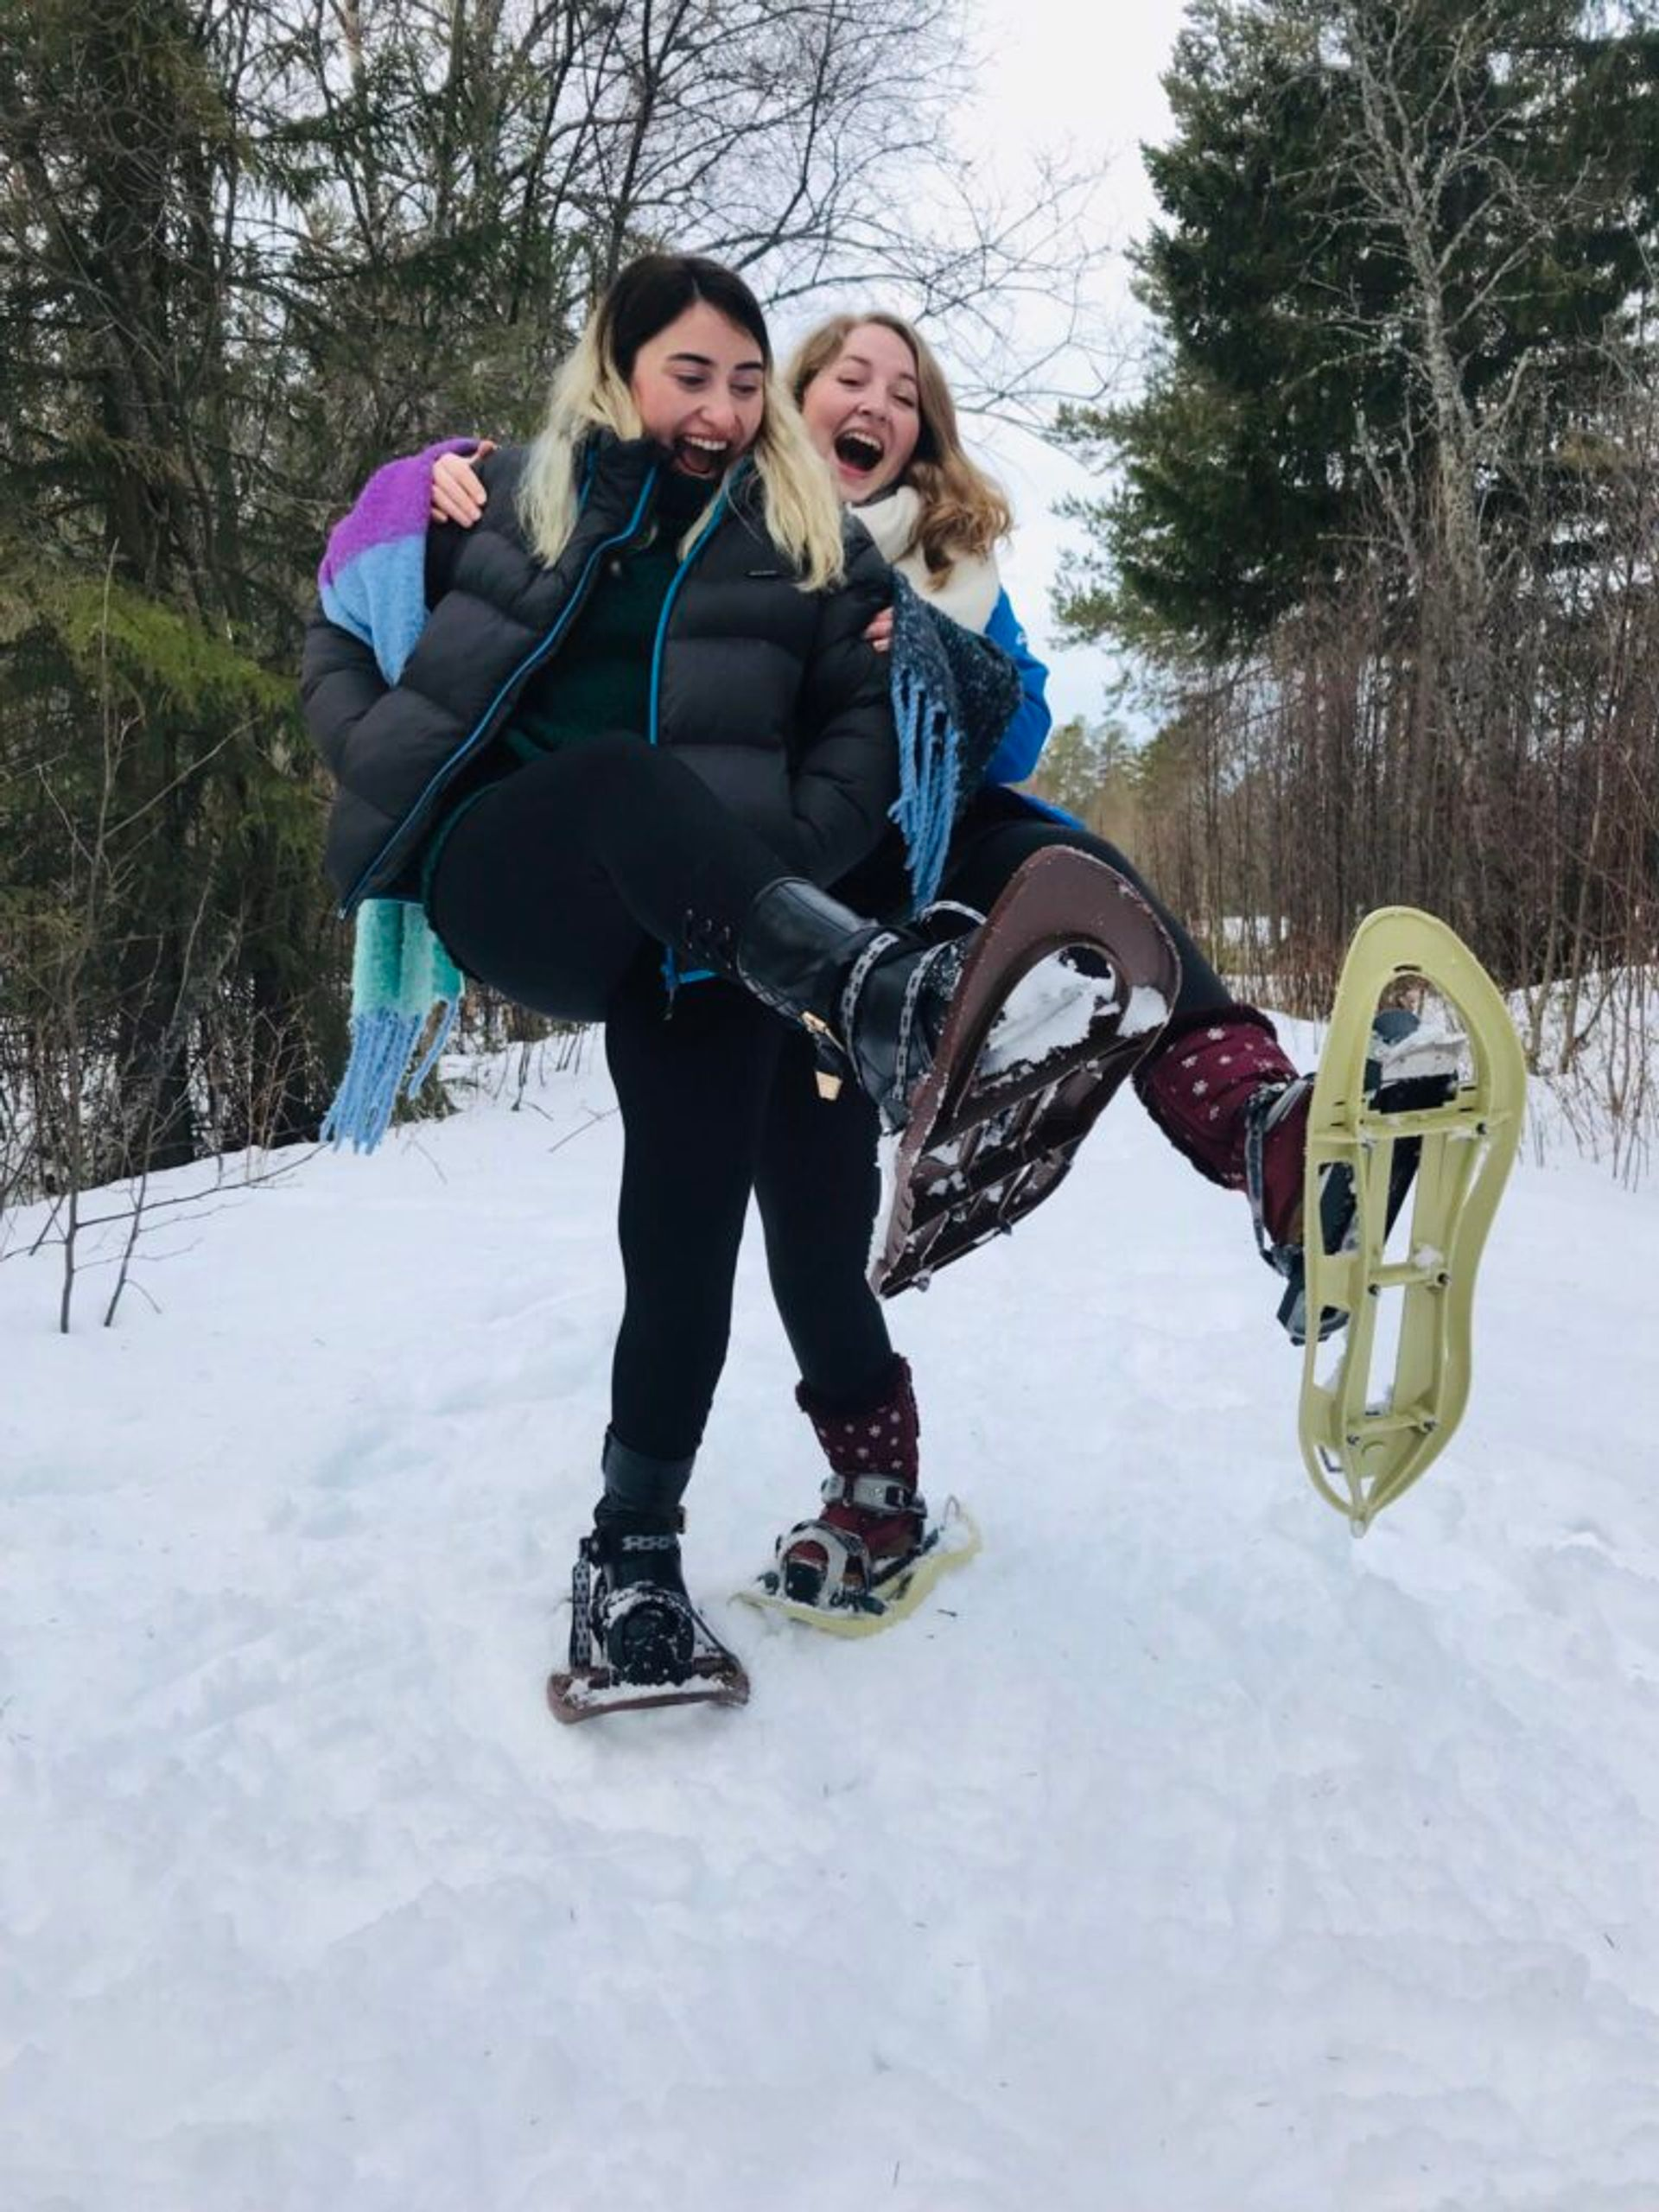 Hazal and Katharina standing in the snow wearing snowshoes.